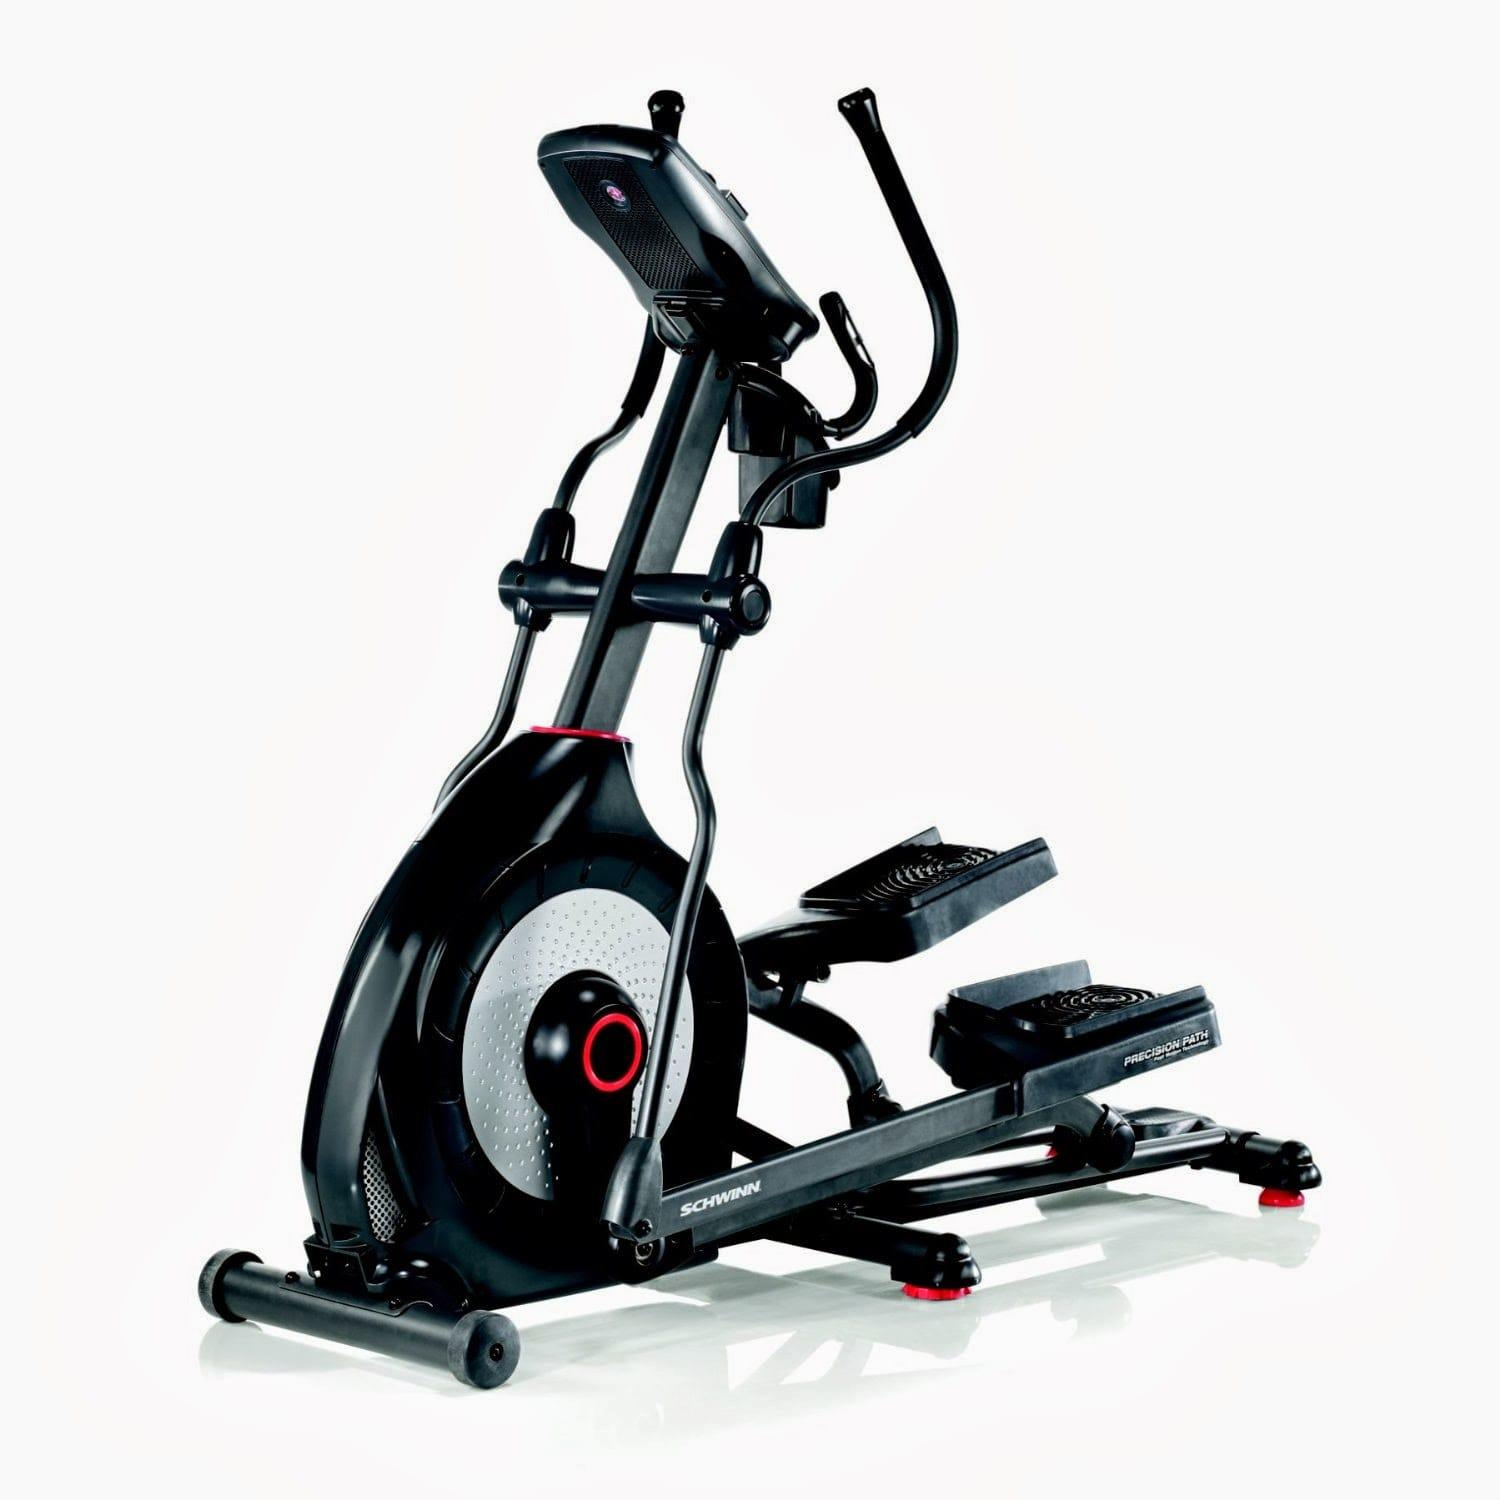 Schwinn 470 Elliptical looks nice in a shiny full black frame